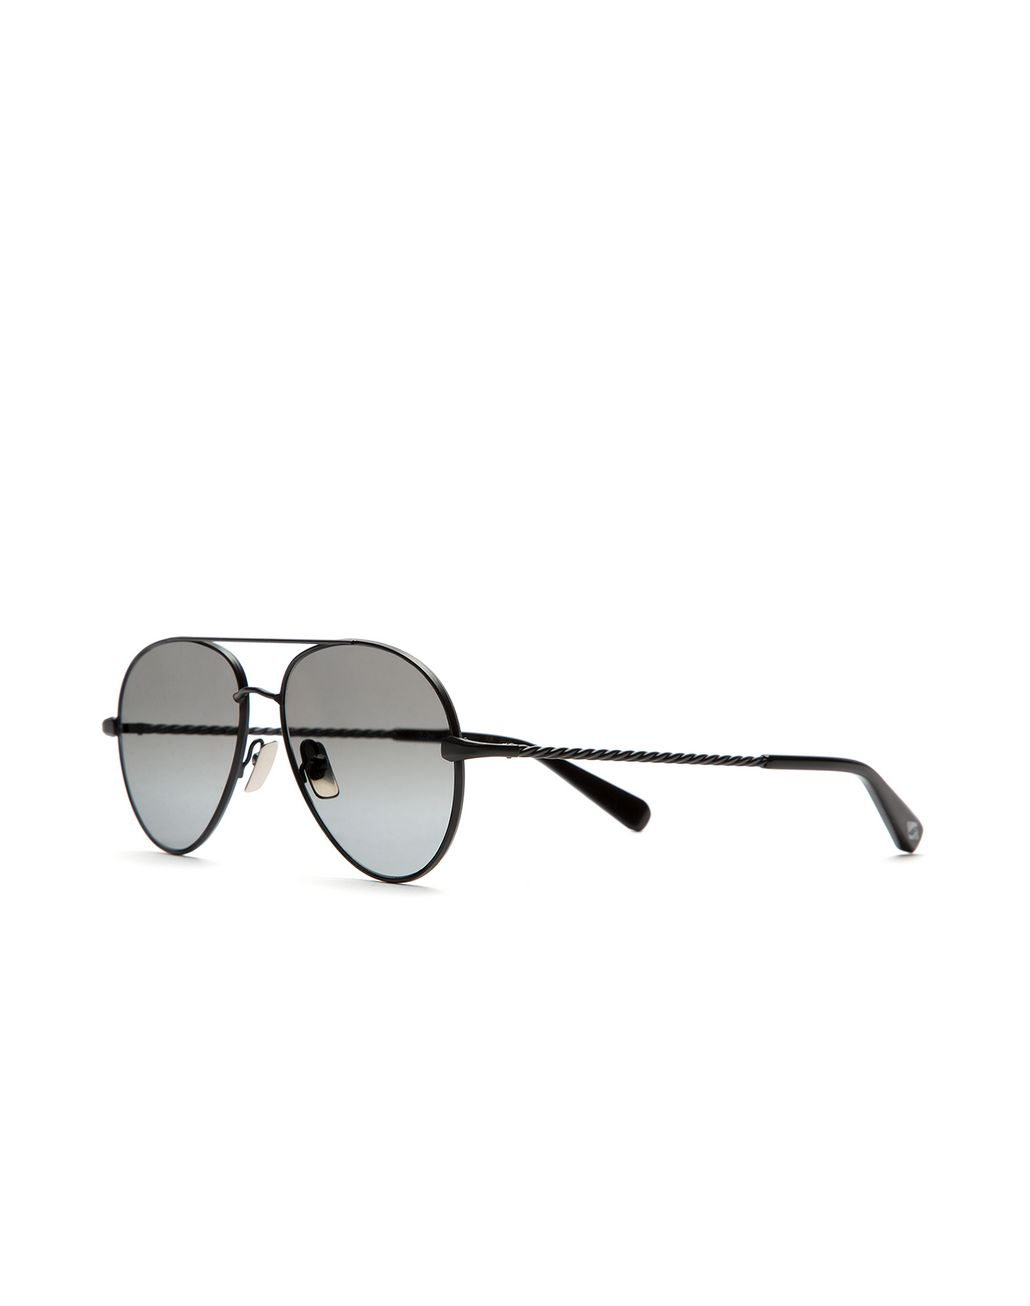 BRIONI Silver Black Aviator Sunglasses with Grey Lenses Sunglasses Man r